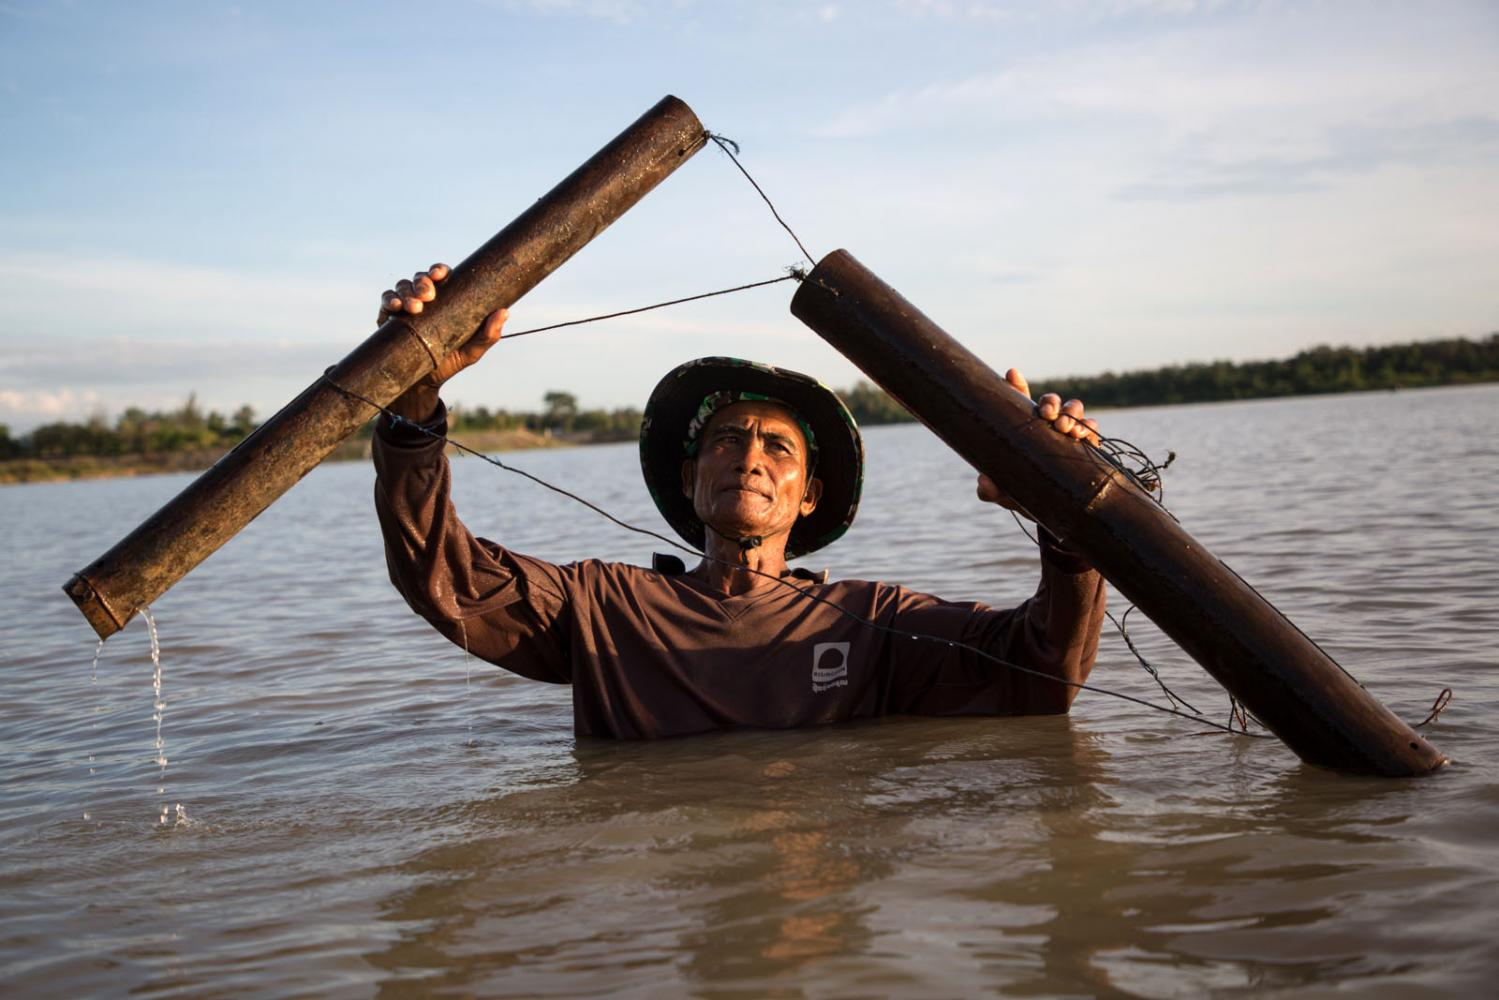 A fisherman catches fishing using a traditional bamboo fish trap. Si Saket, Thailand.